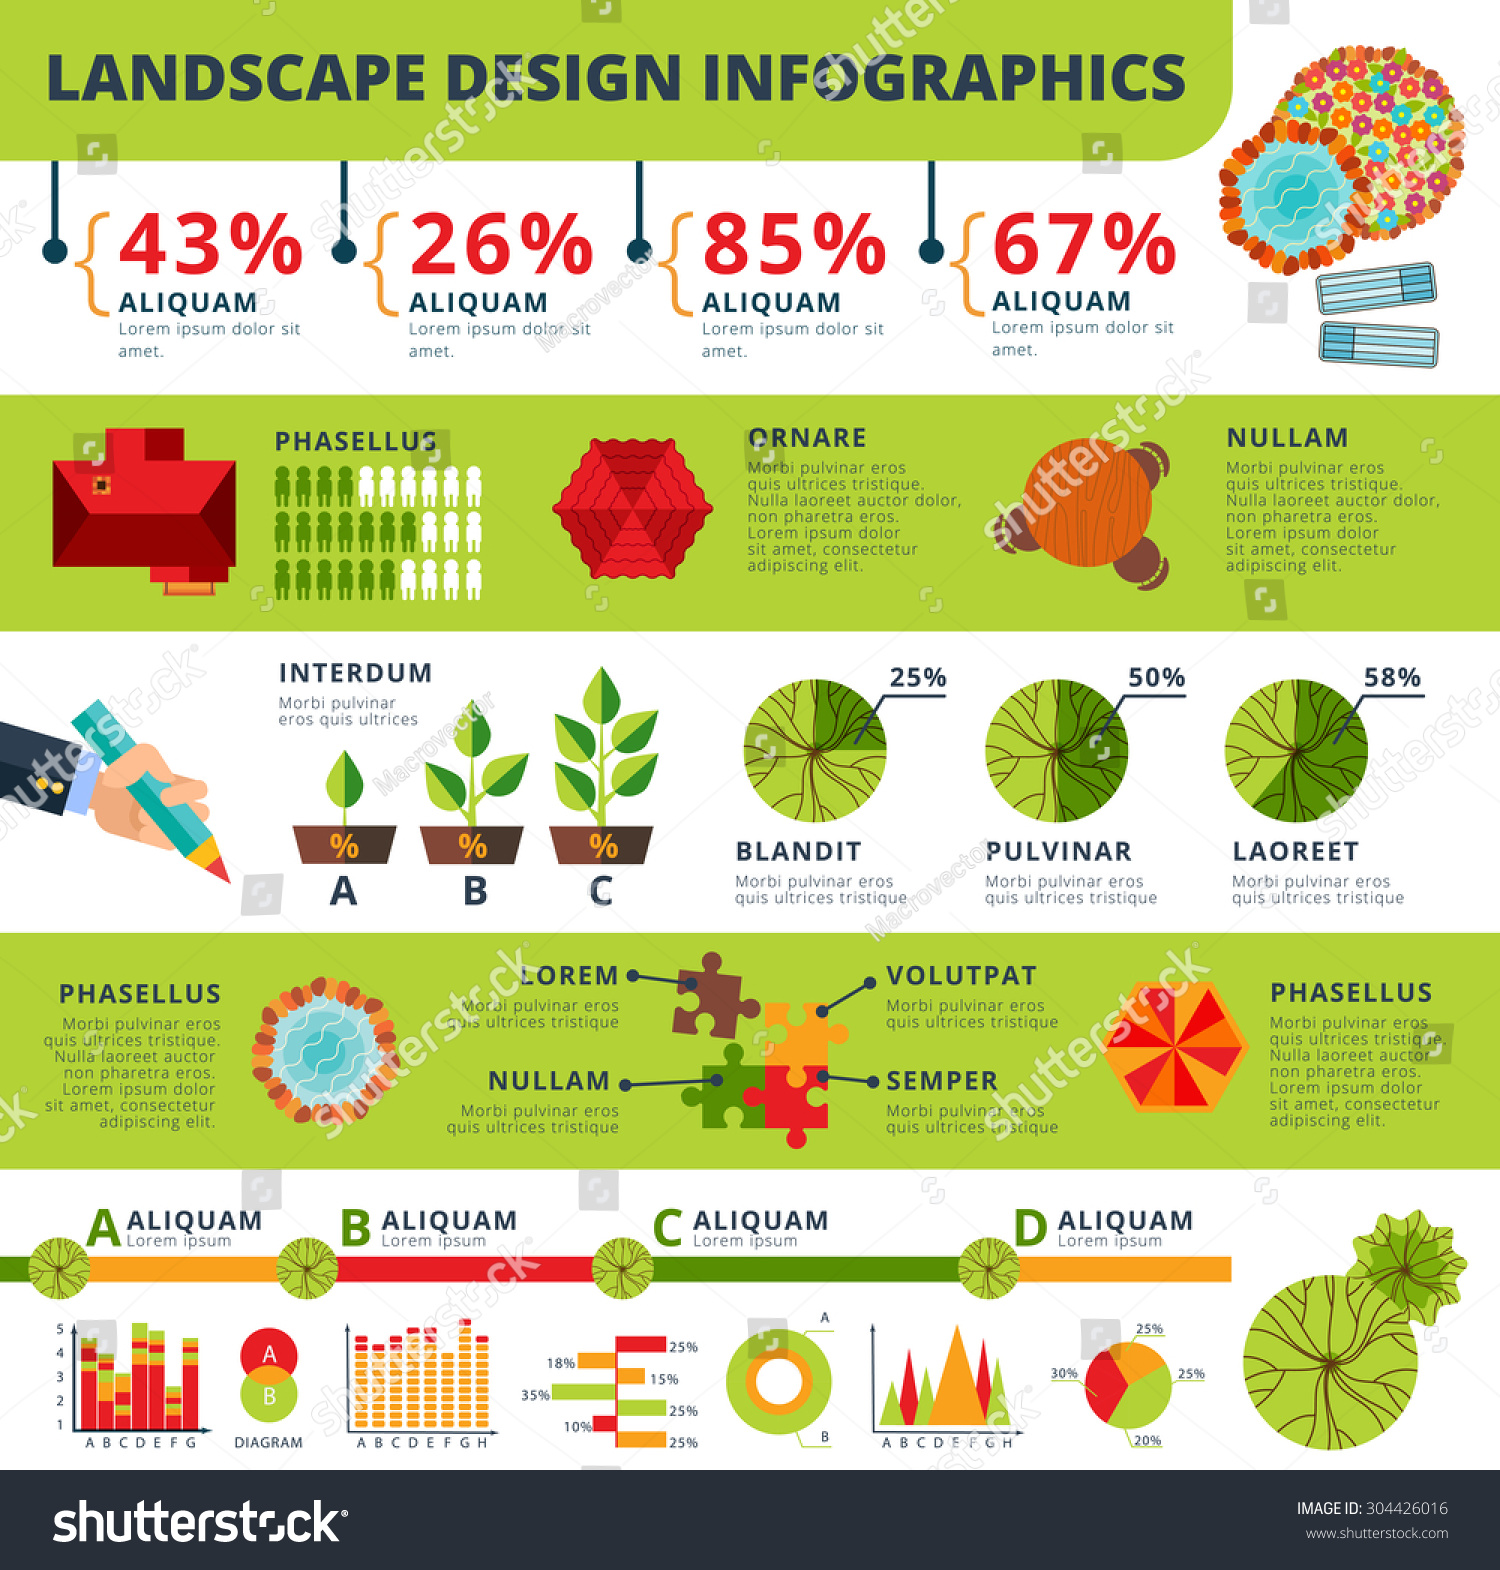 Landscape Architecture And Garden Design Services Statistics Infographic  Report With Diagrams And Rating Poster Abstract Vector